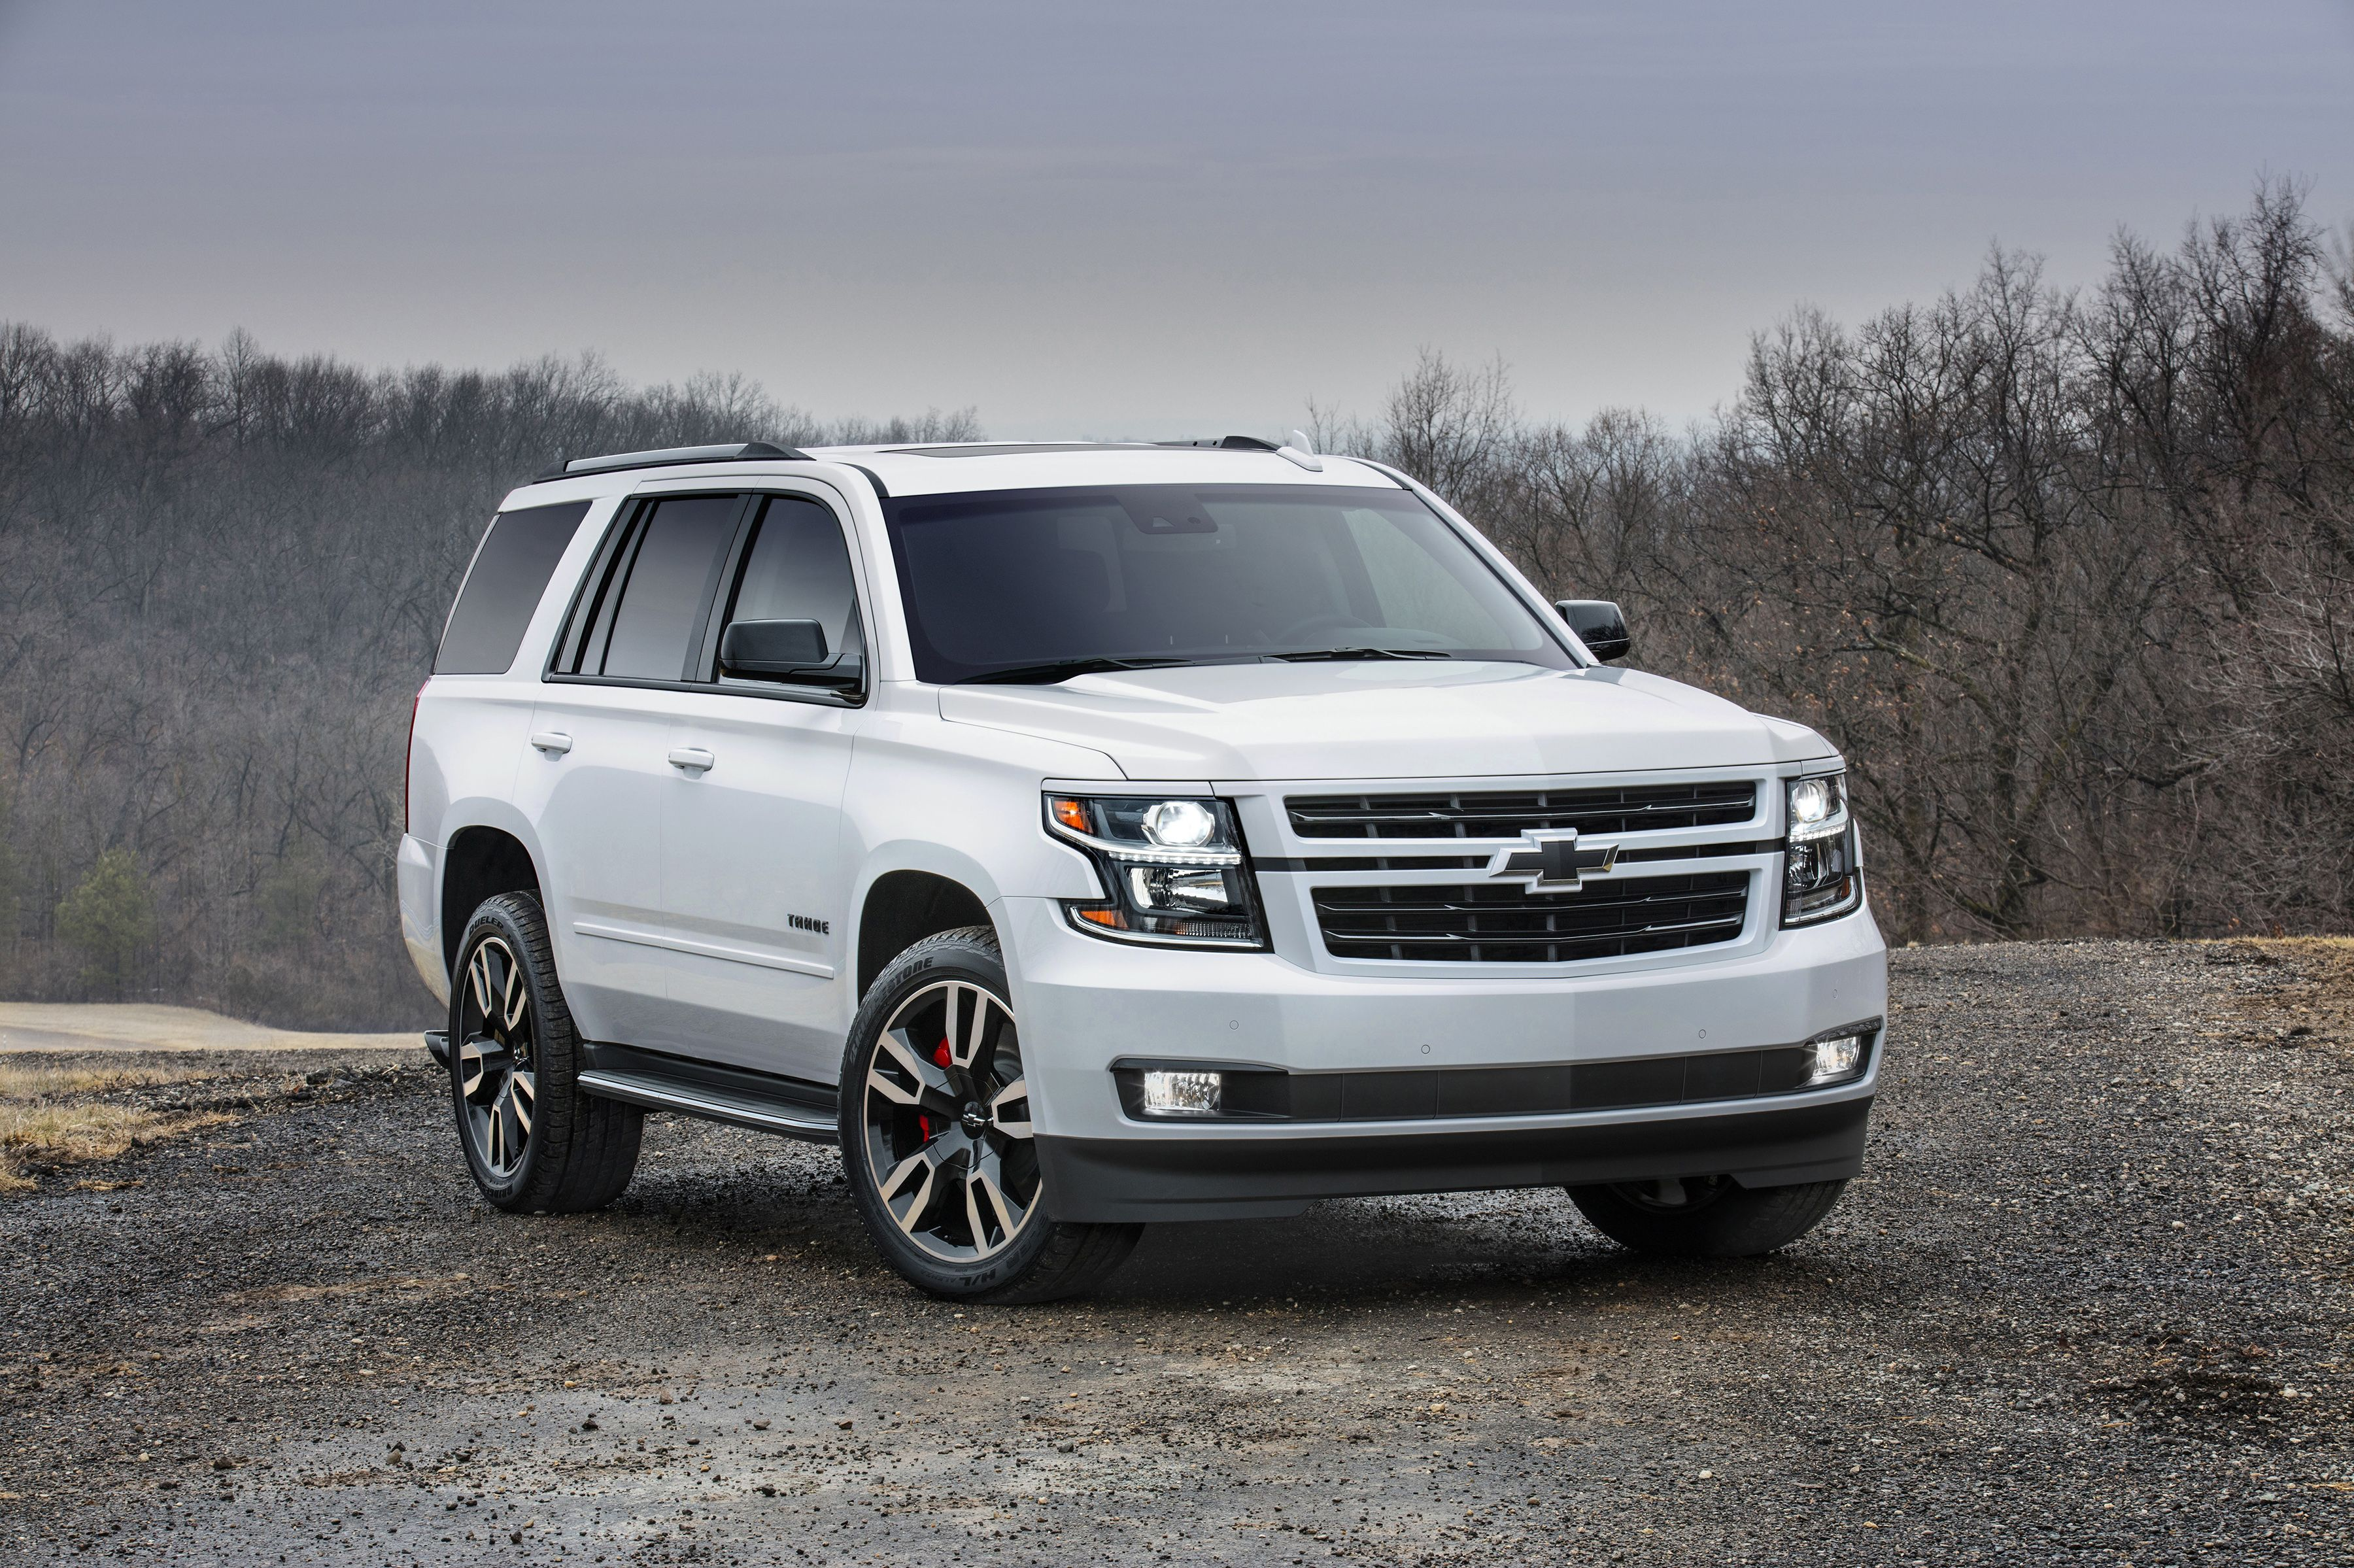 2018 Chevrolet Tahoe Rst With Images Chevrolet Tahoe